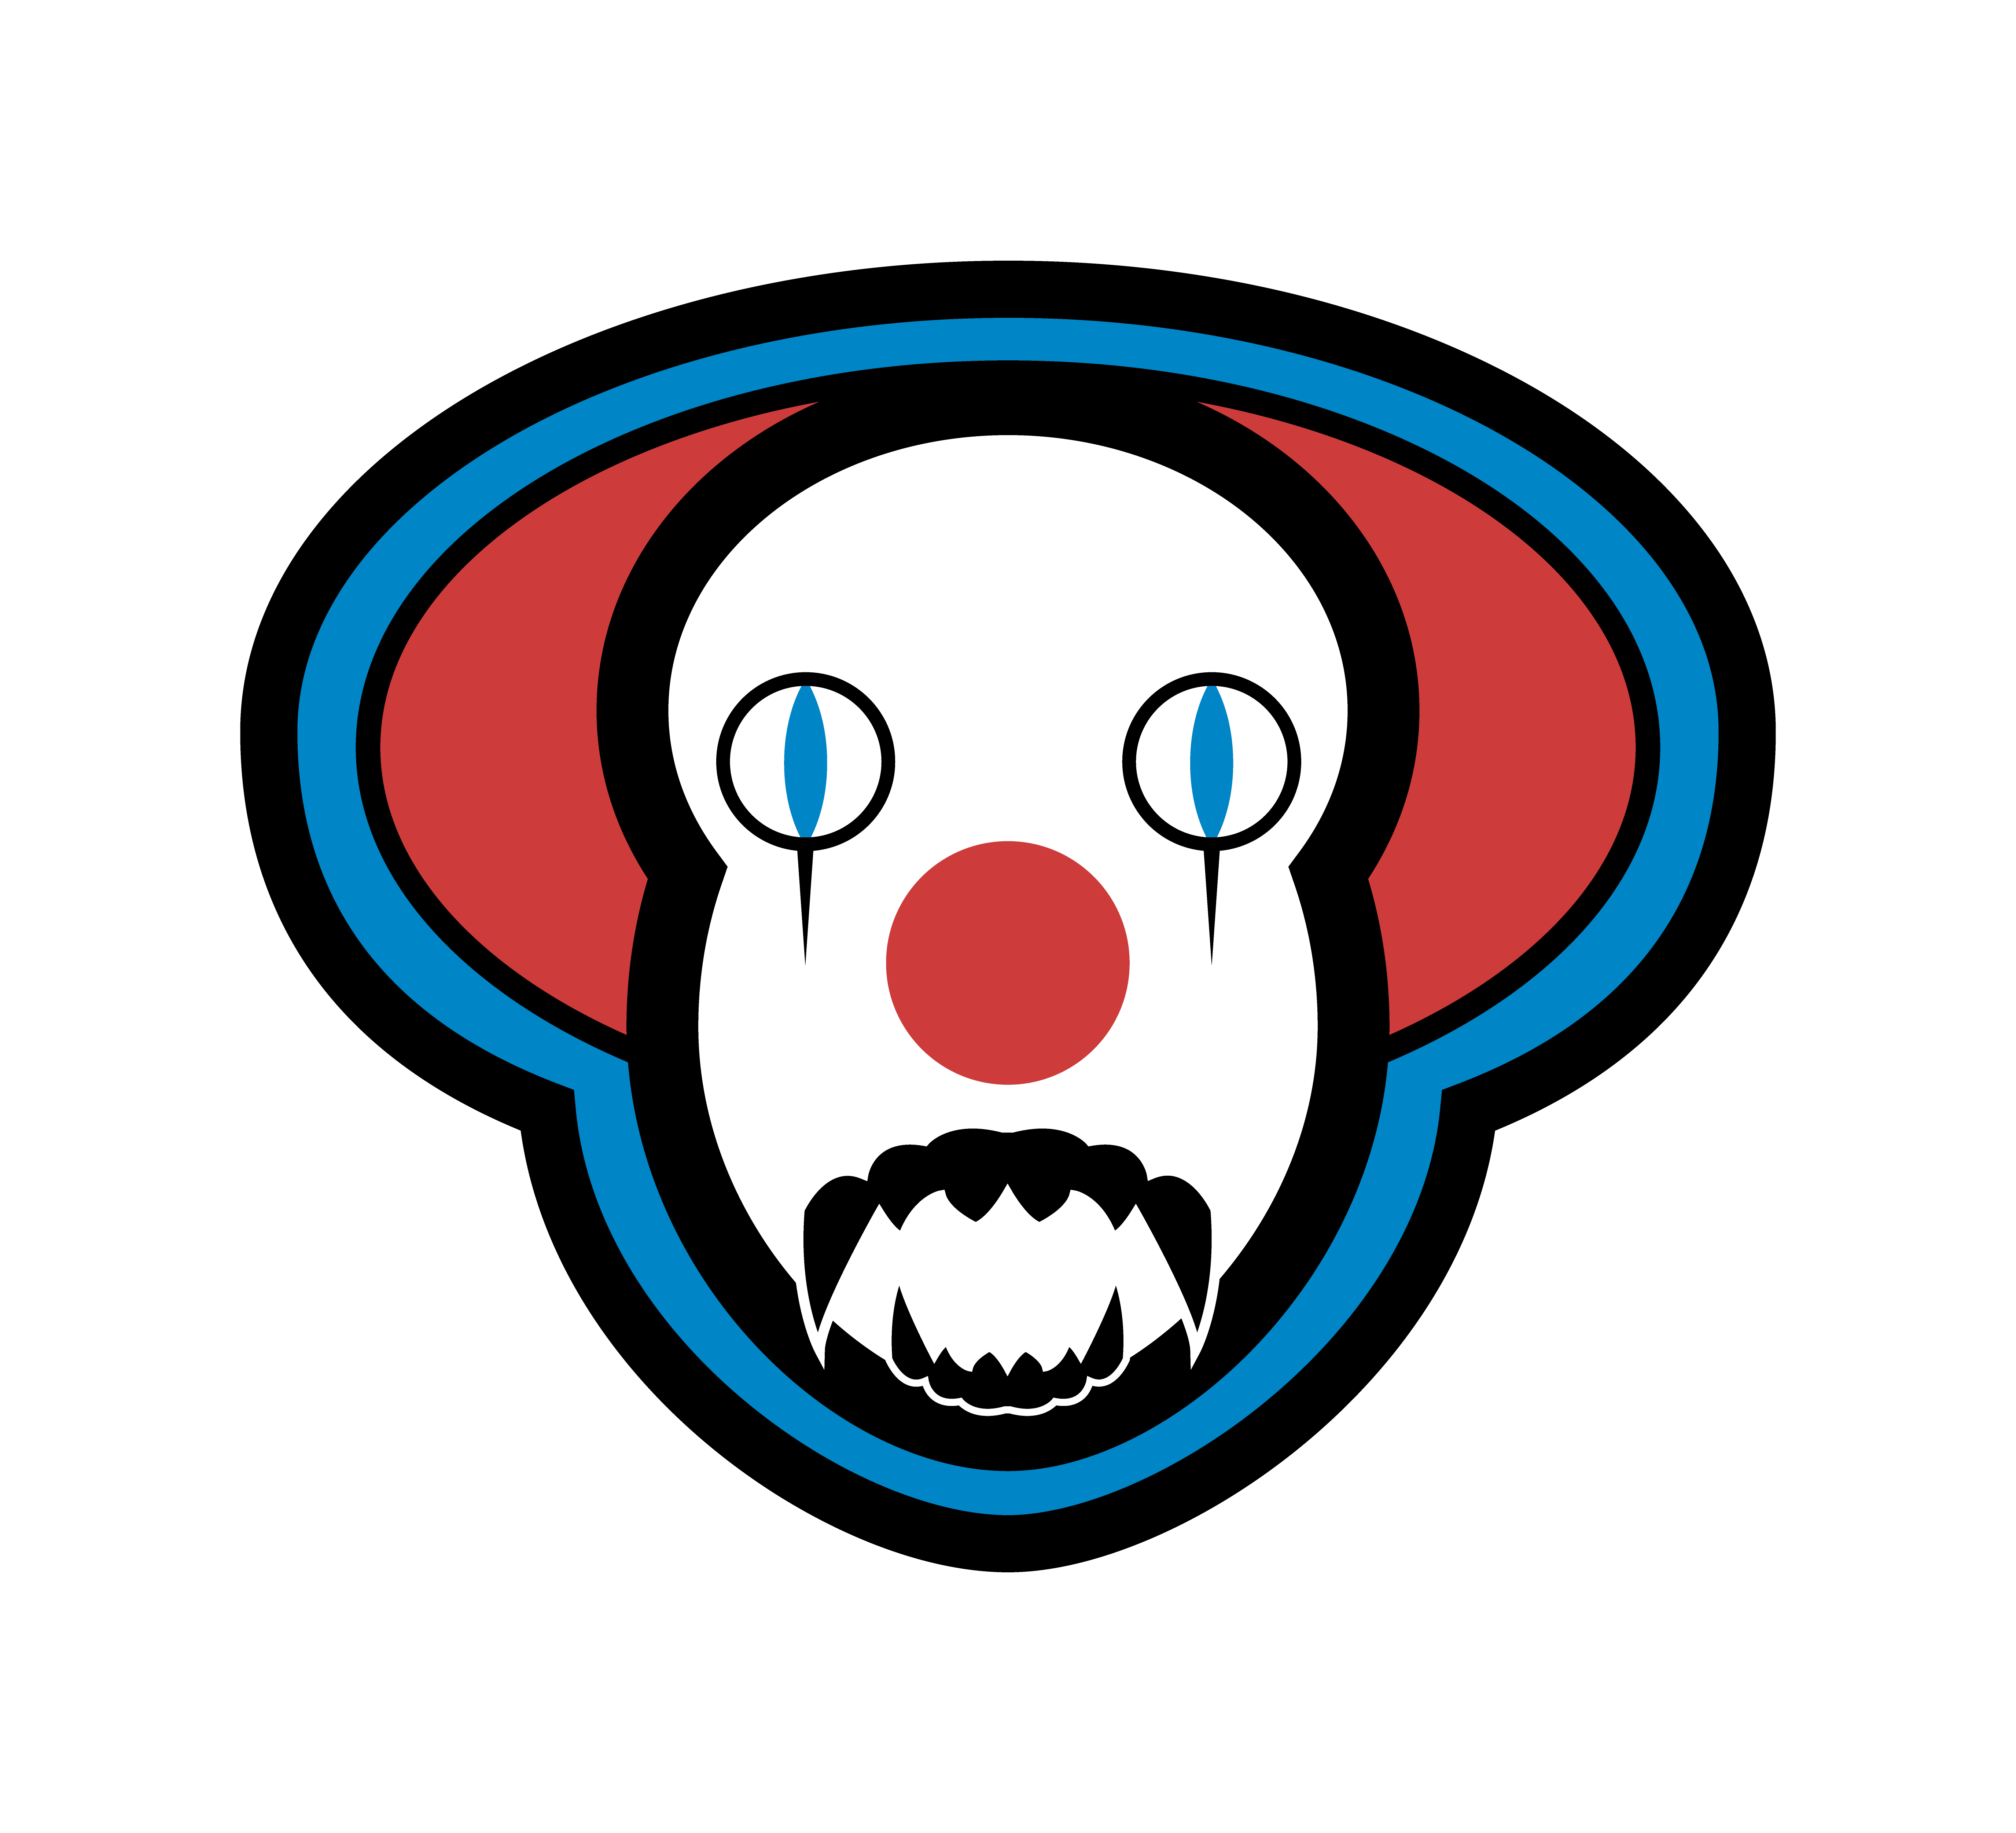 Pennywise the clown drawing png vector. Inspired by it aka